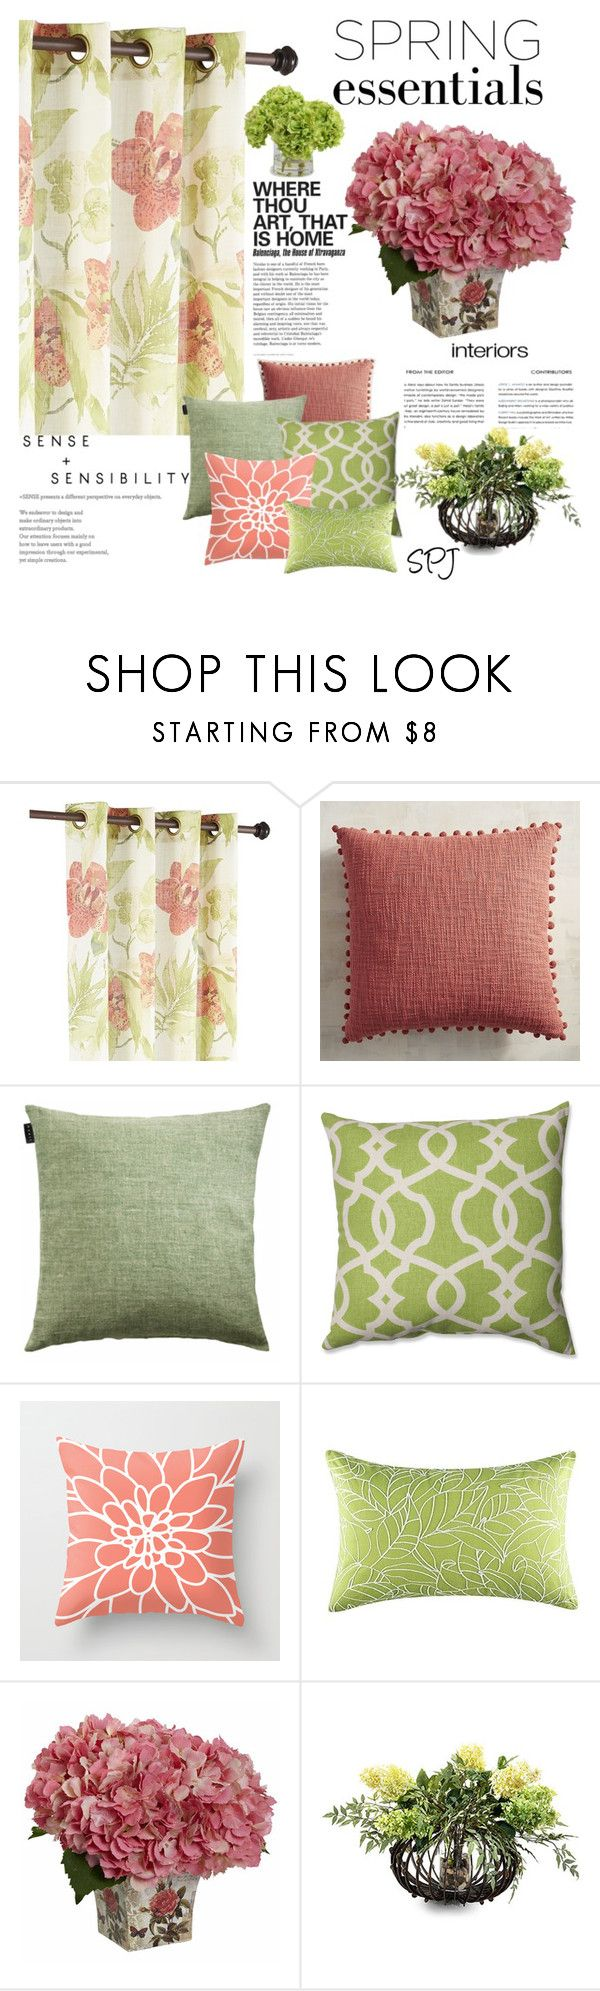 """""""Spring Essentials"""" by s-p-j ❤ liked on Polyvore featuring interior, interiors, interior design, home, home decor, interior decorating, Pier 1 Imports, LINUM, Pillow Perfect and John-Richard"""